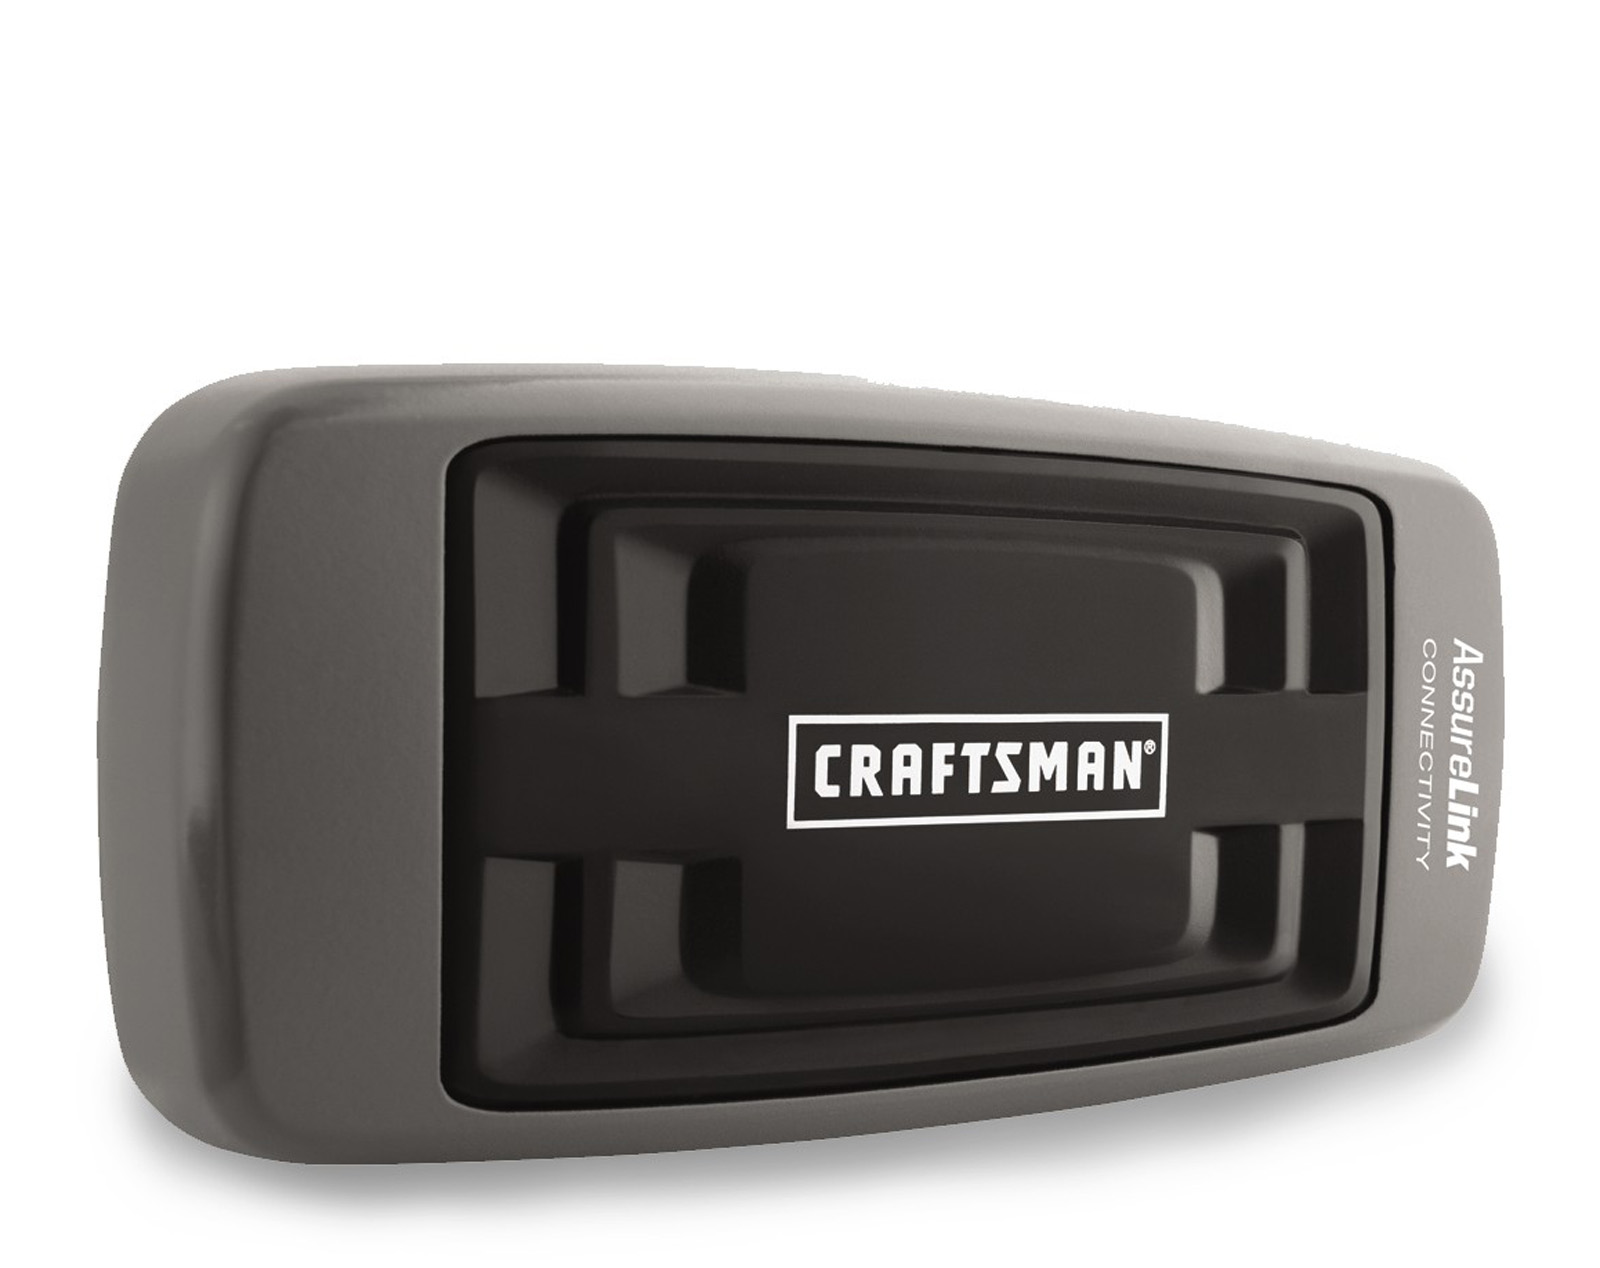 Craftsman AssureLink™ Internet 3/4 HP DC Belt Drive Garage Door Opener DieHard® Battery Backup, No Annual Fees FREE SHIPPING